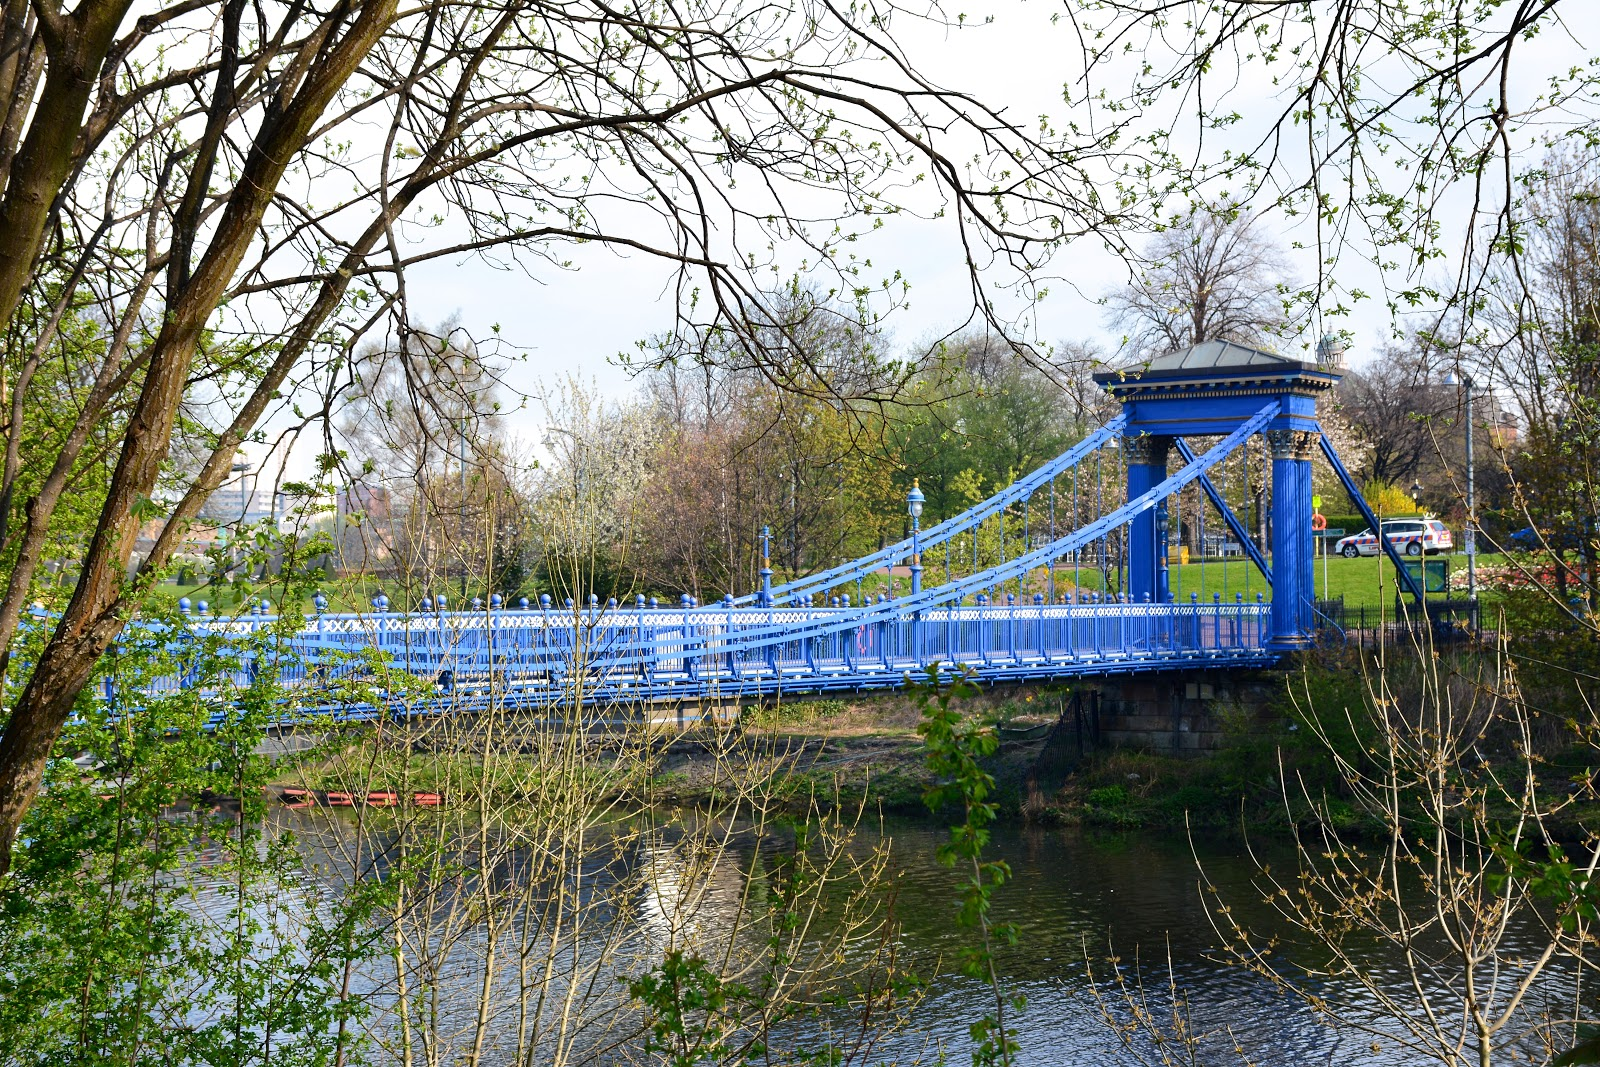 Springtime at the St. Andrews Suspension Bridge in Glasgow, Scotland